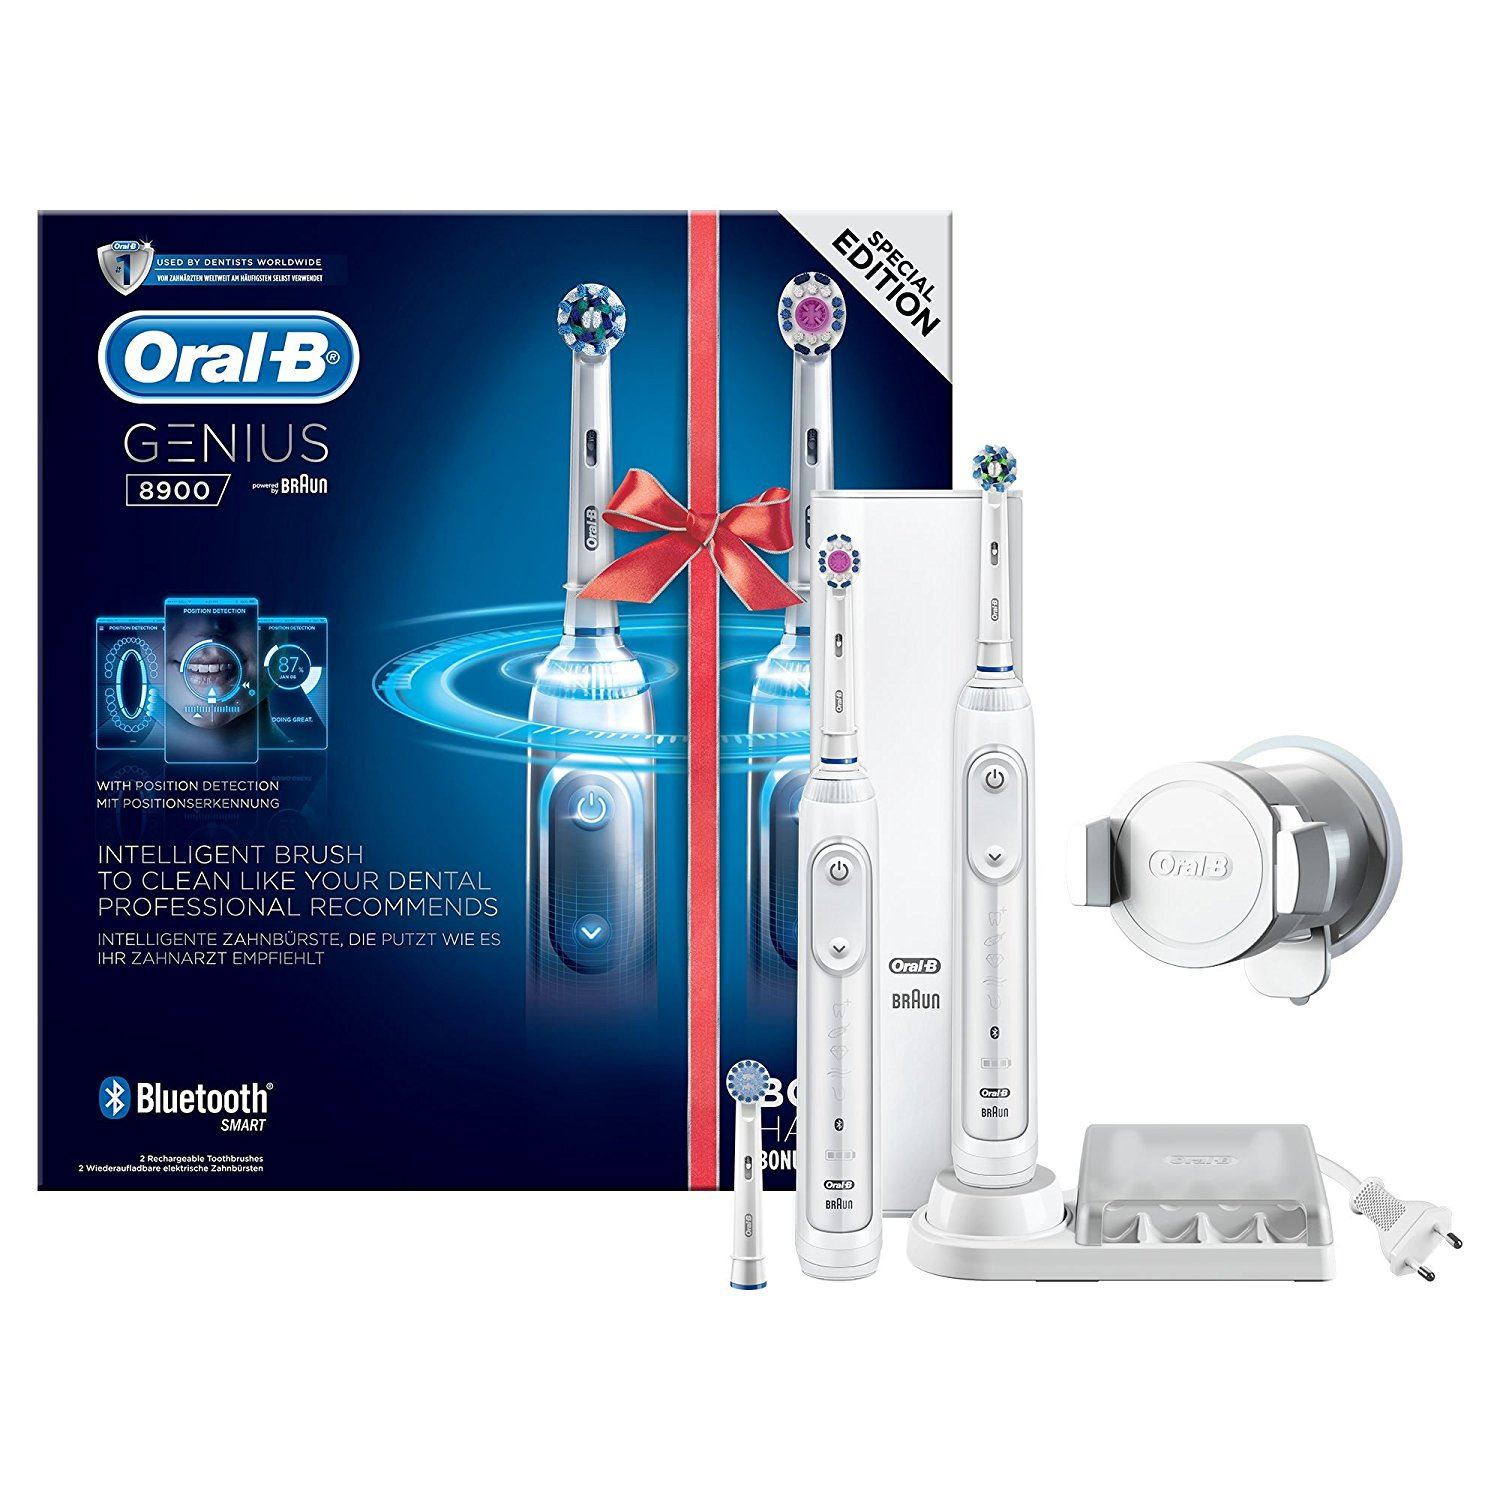 2 X Braun Oral B Genius 8900 Electric Rechargeable Power